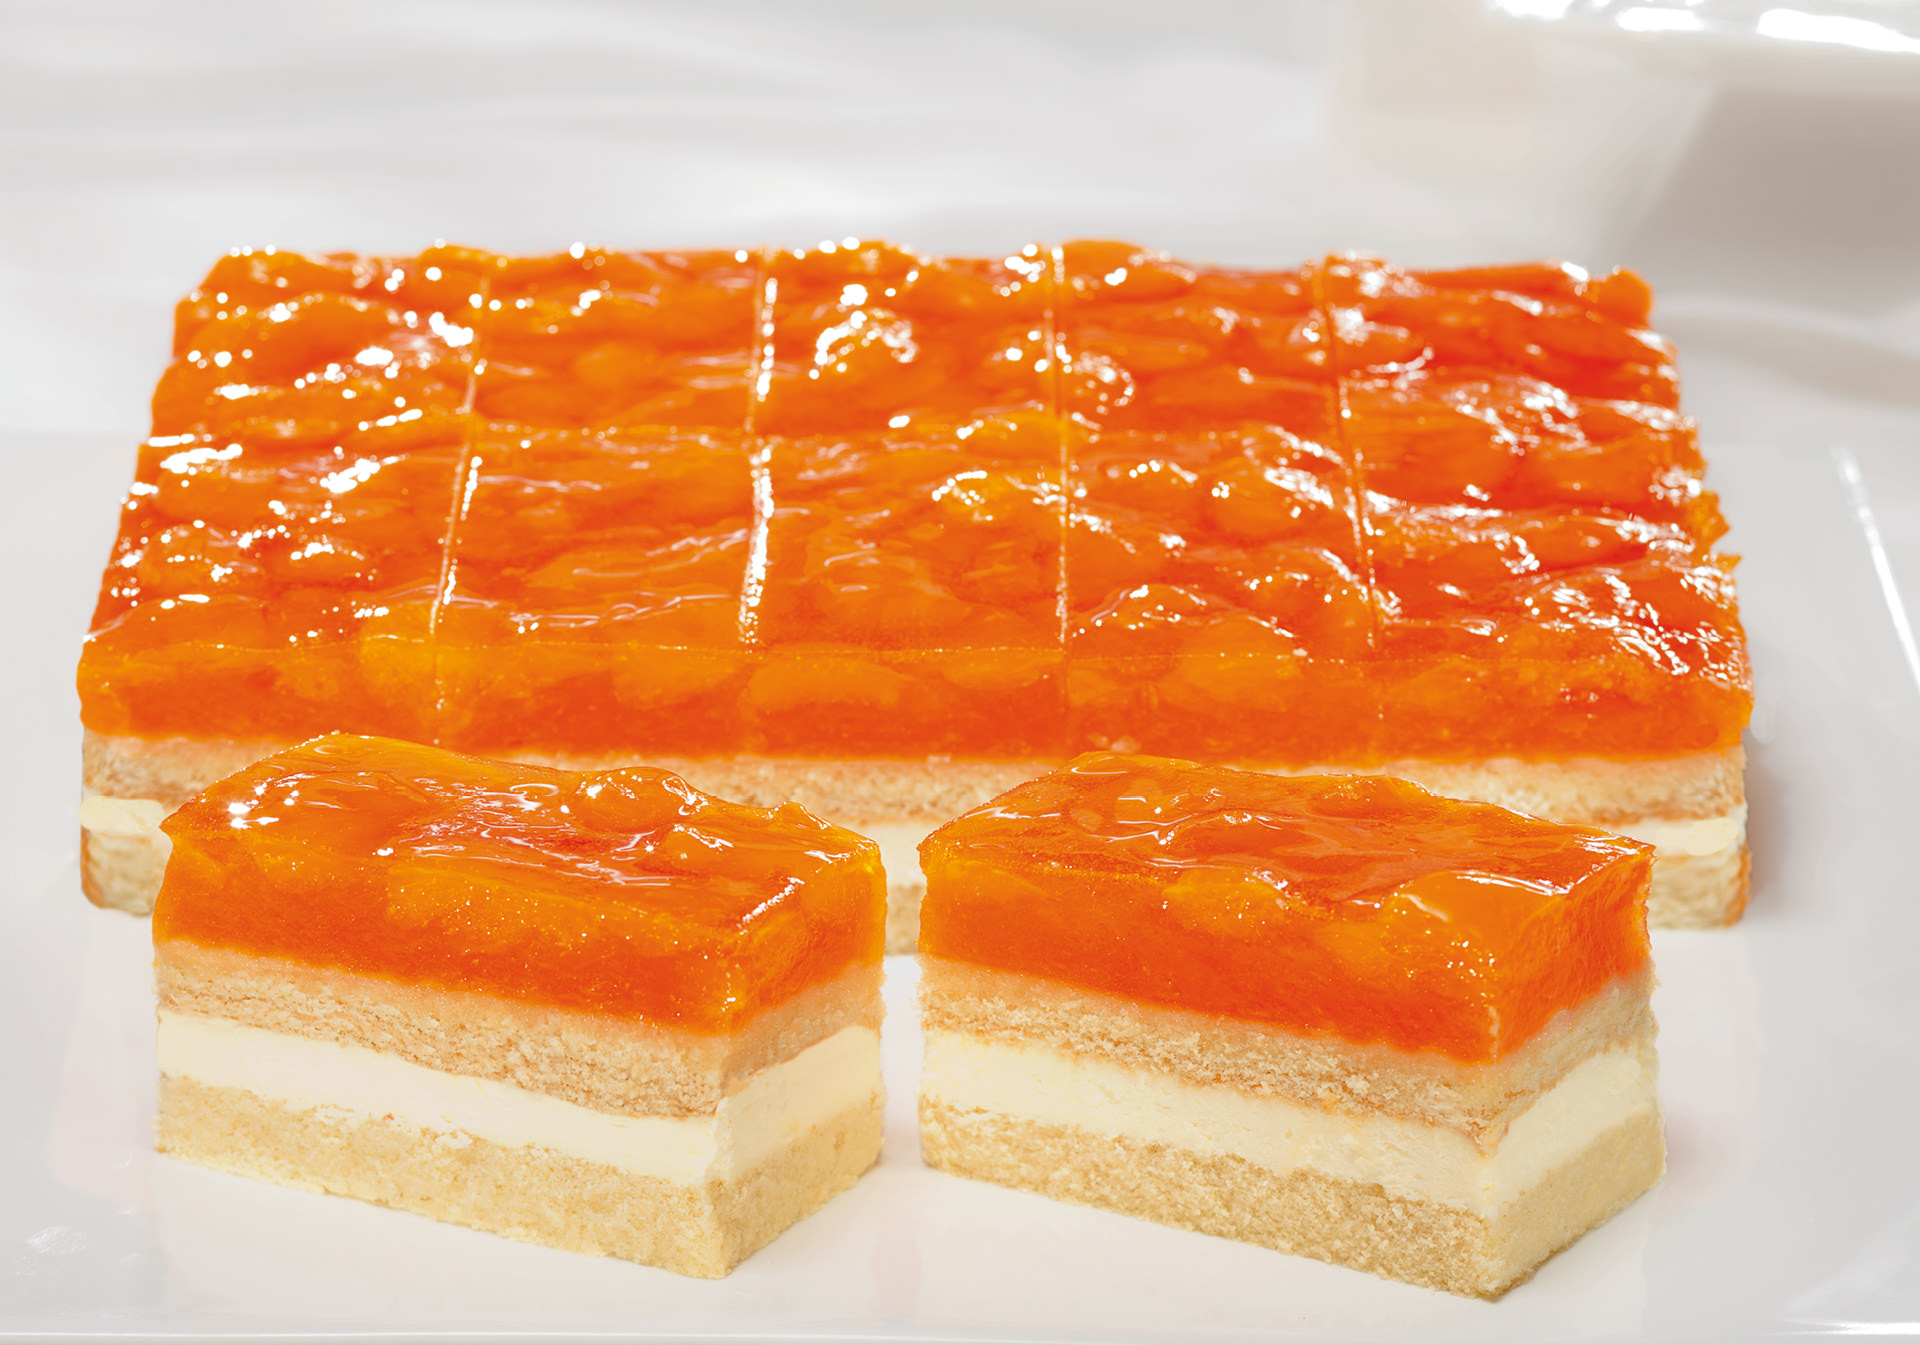 Tangerine cream slice 20 Portions